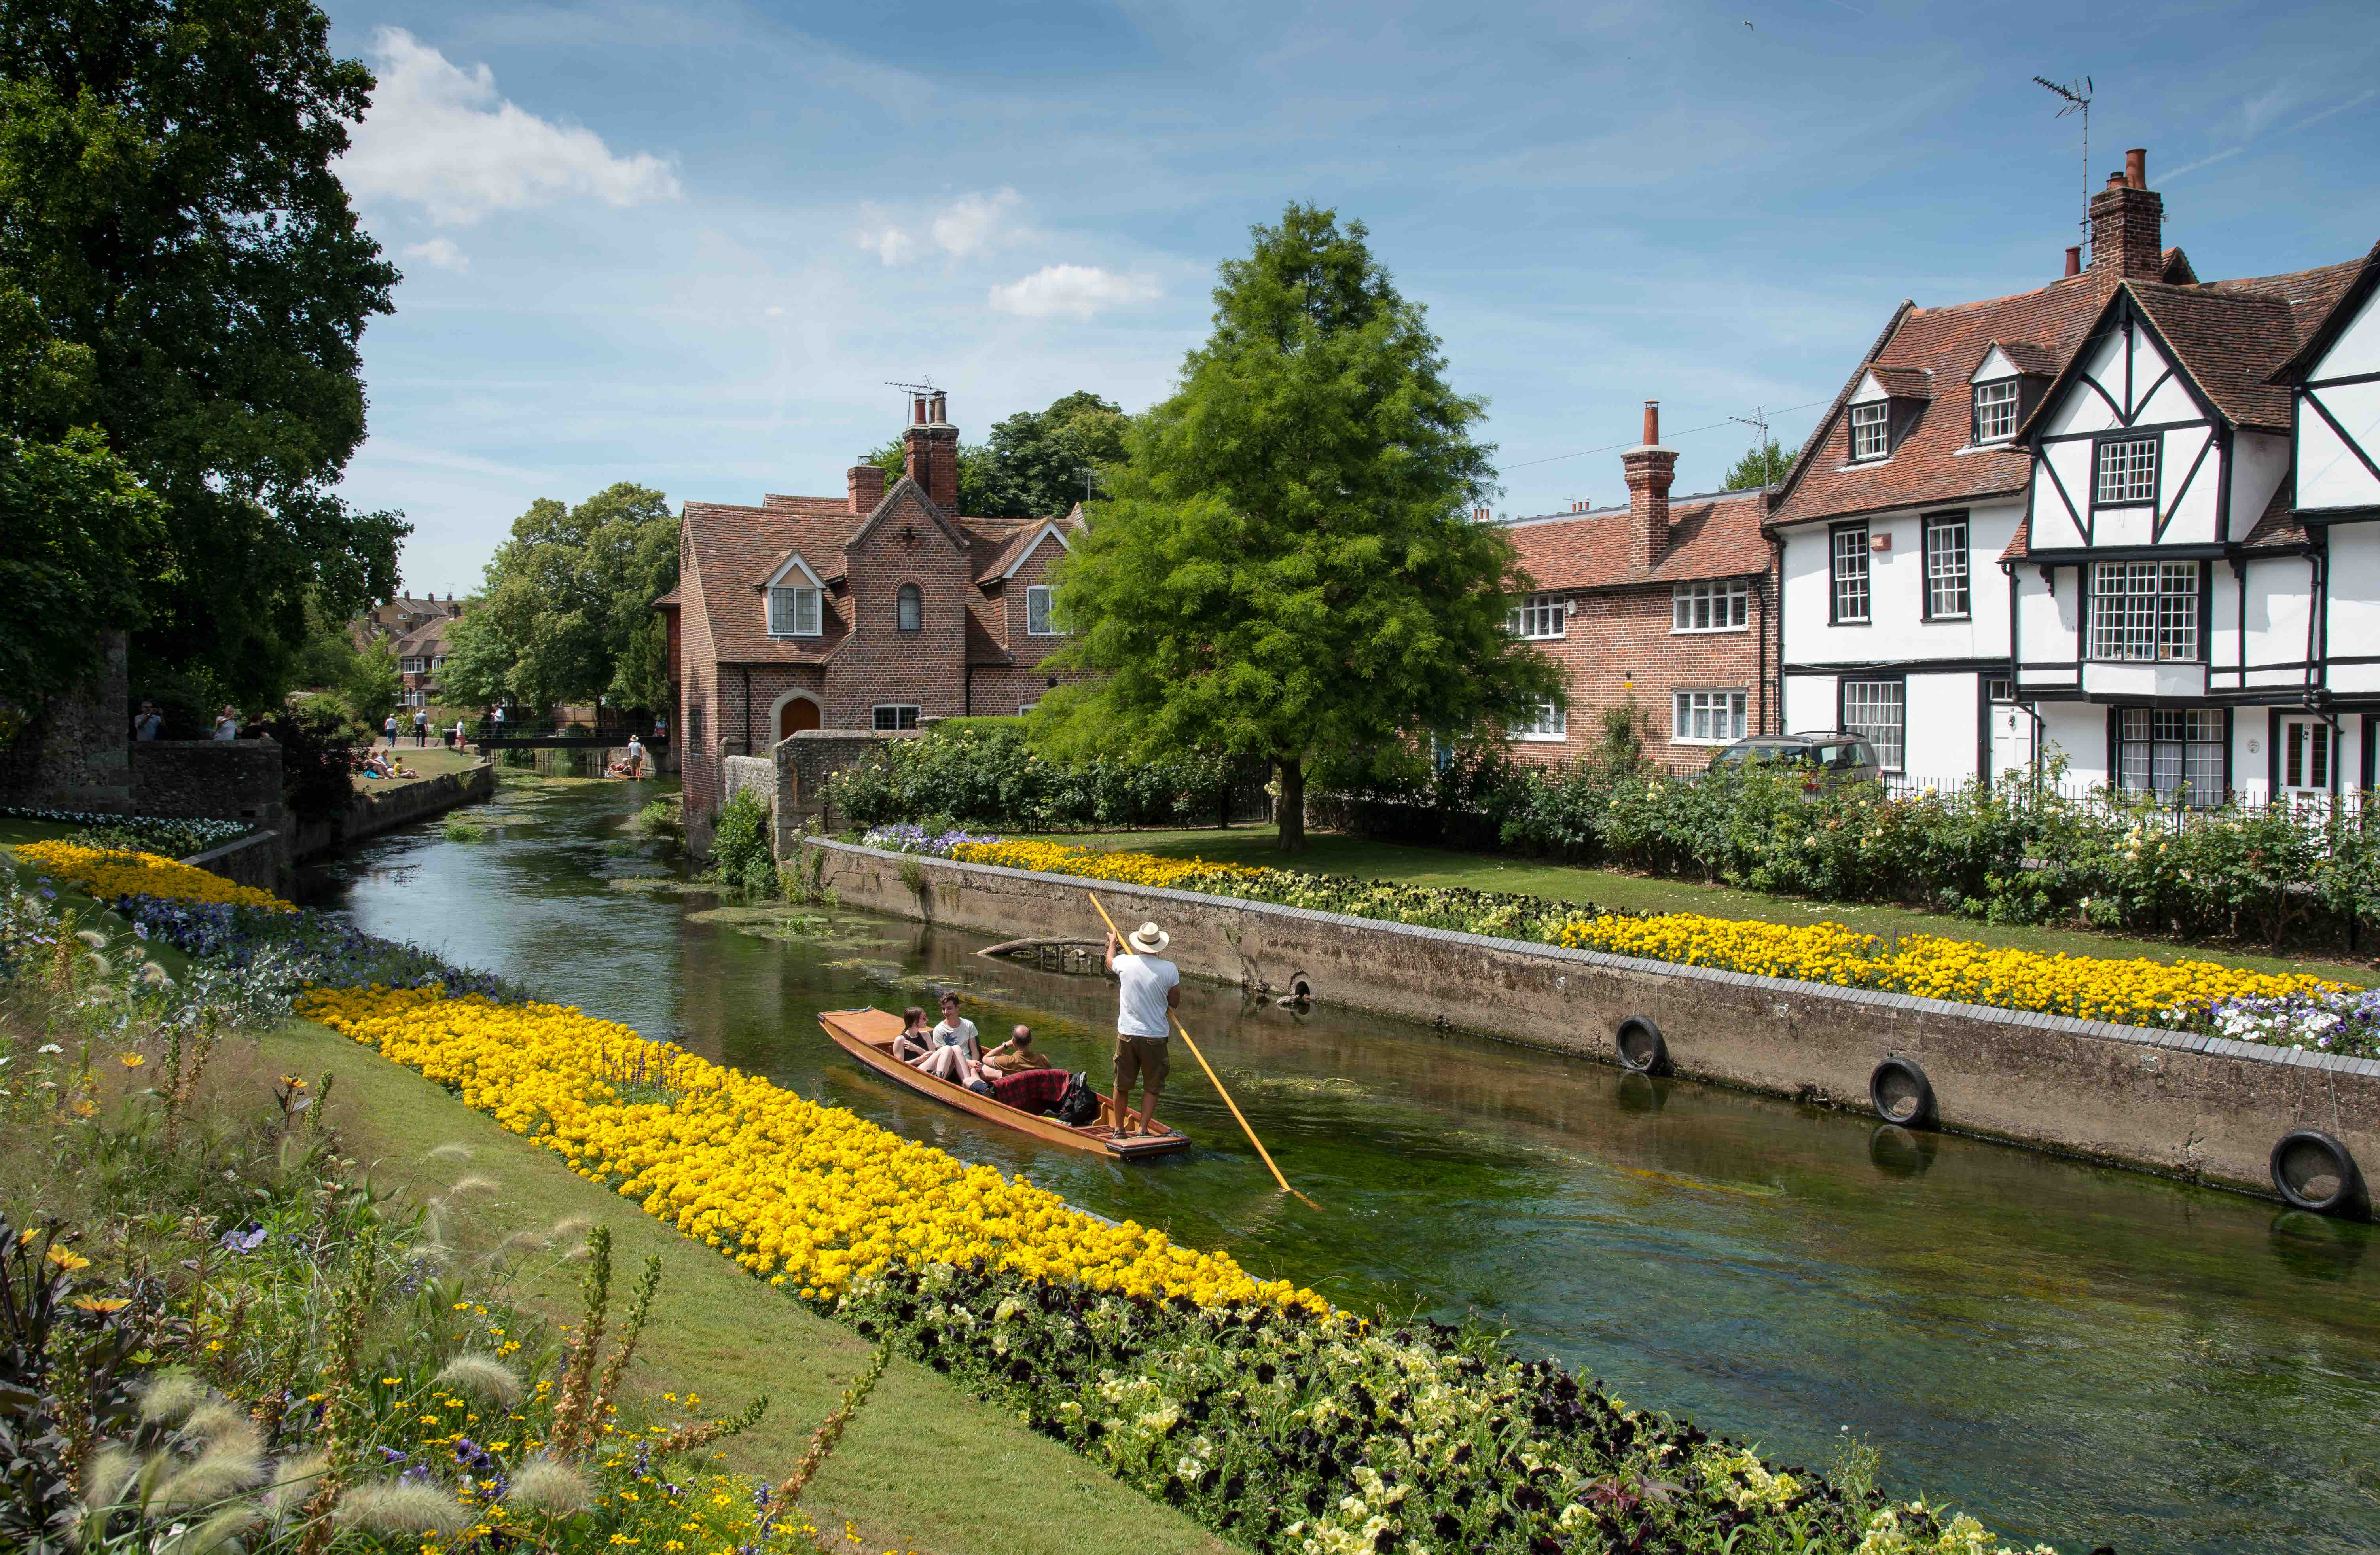 The canal of The River Stour at the beautiful Chartham gardens in Canterbury.